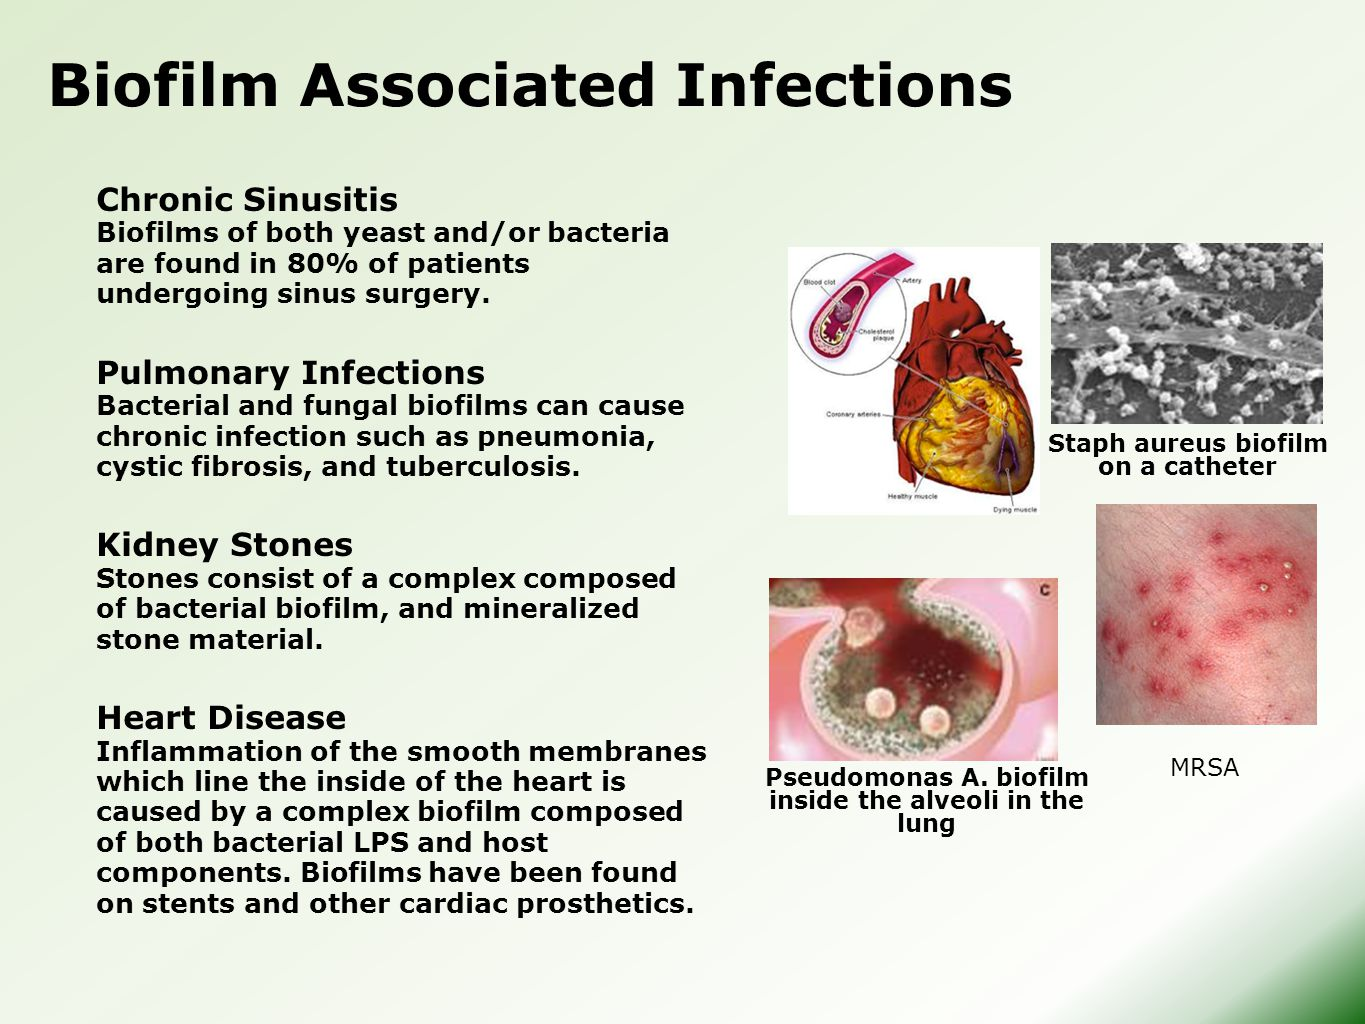 Biofilm Associated Infections